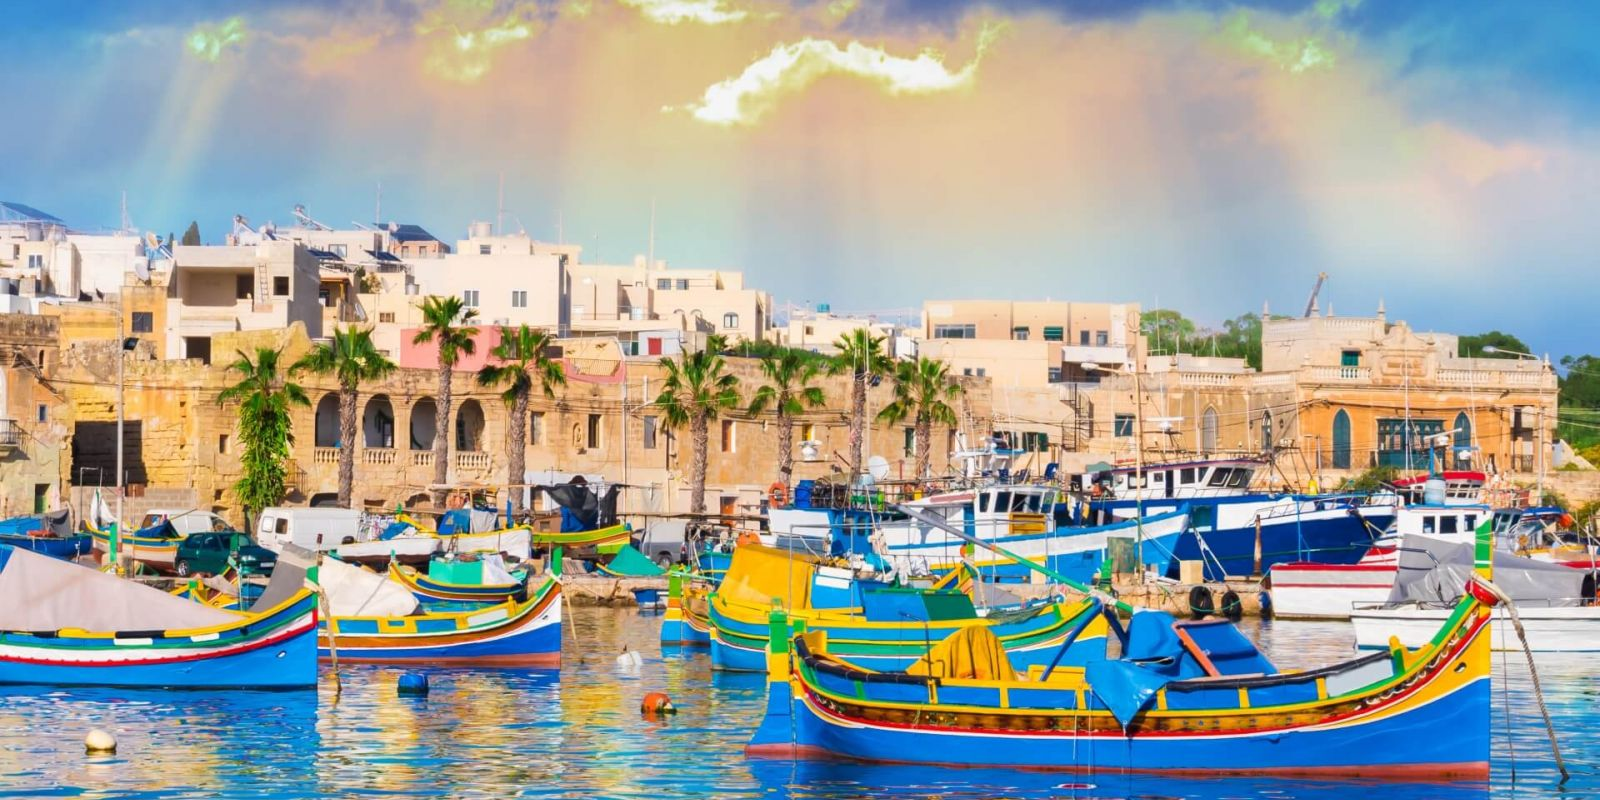 https://www.talamare.com/medias/Colourful boats in the old fishing village of Marsaxlokk on the island of Malta